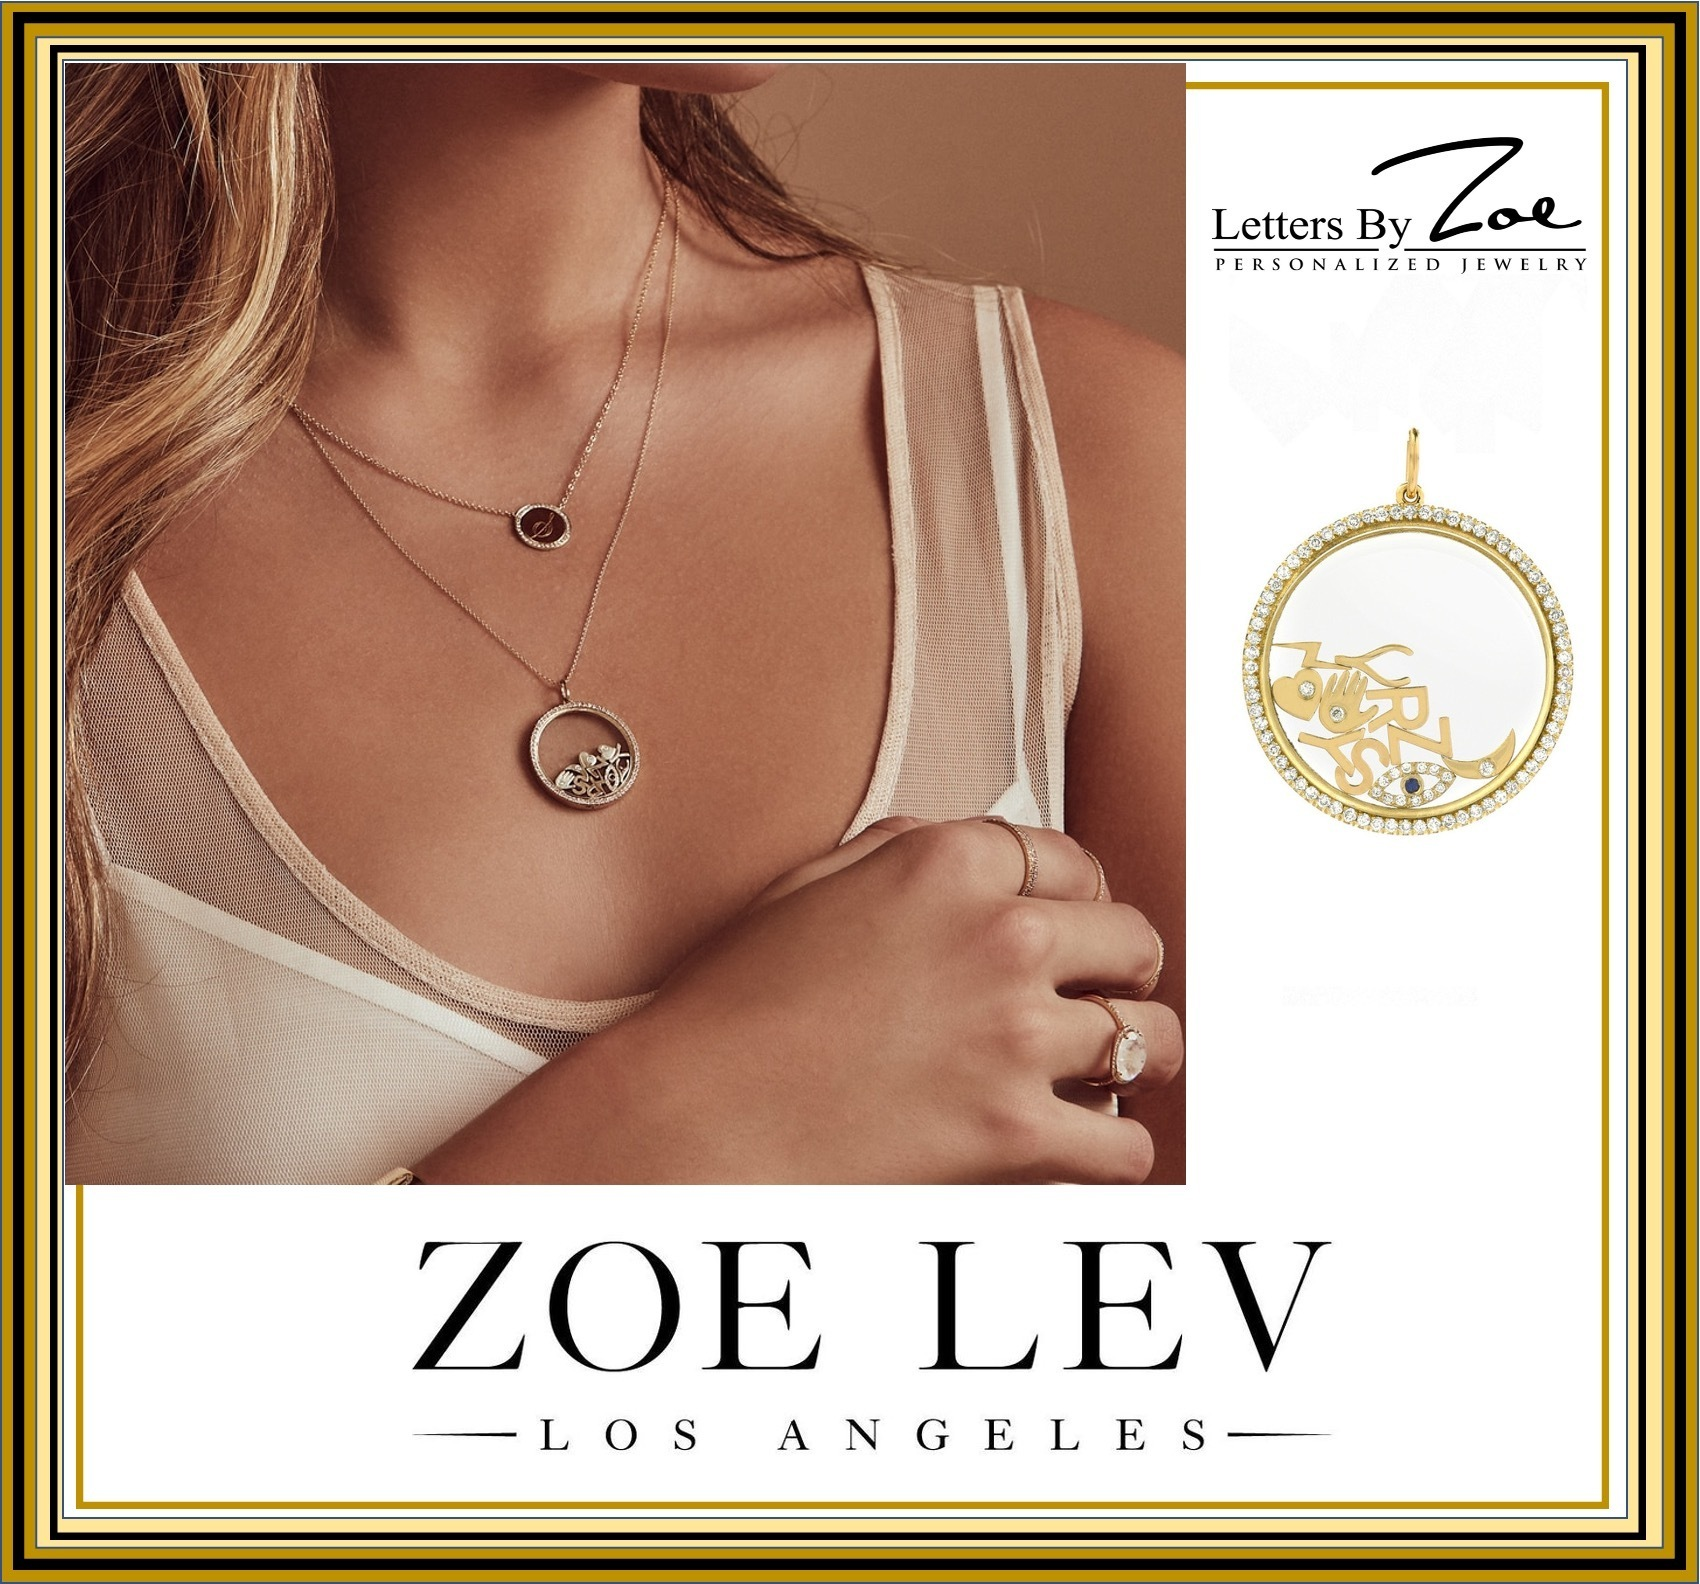 14k Gold Charm Locket Necklaceセレブ愛用 ZOE LEV  jewelry (ZOE LEV/ネックレス・ペンダント) 67686363